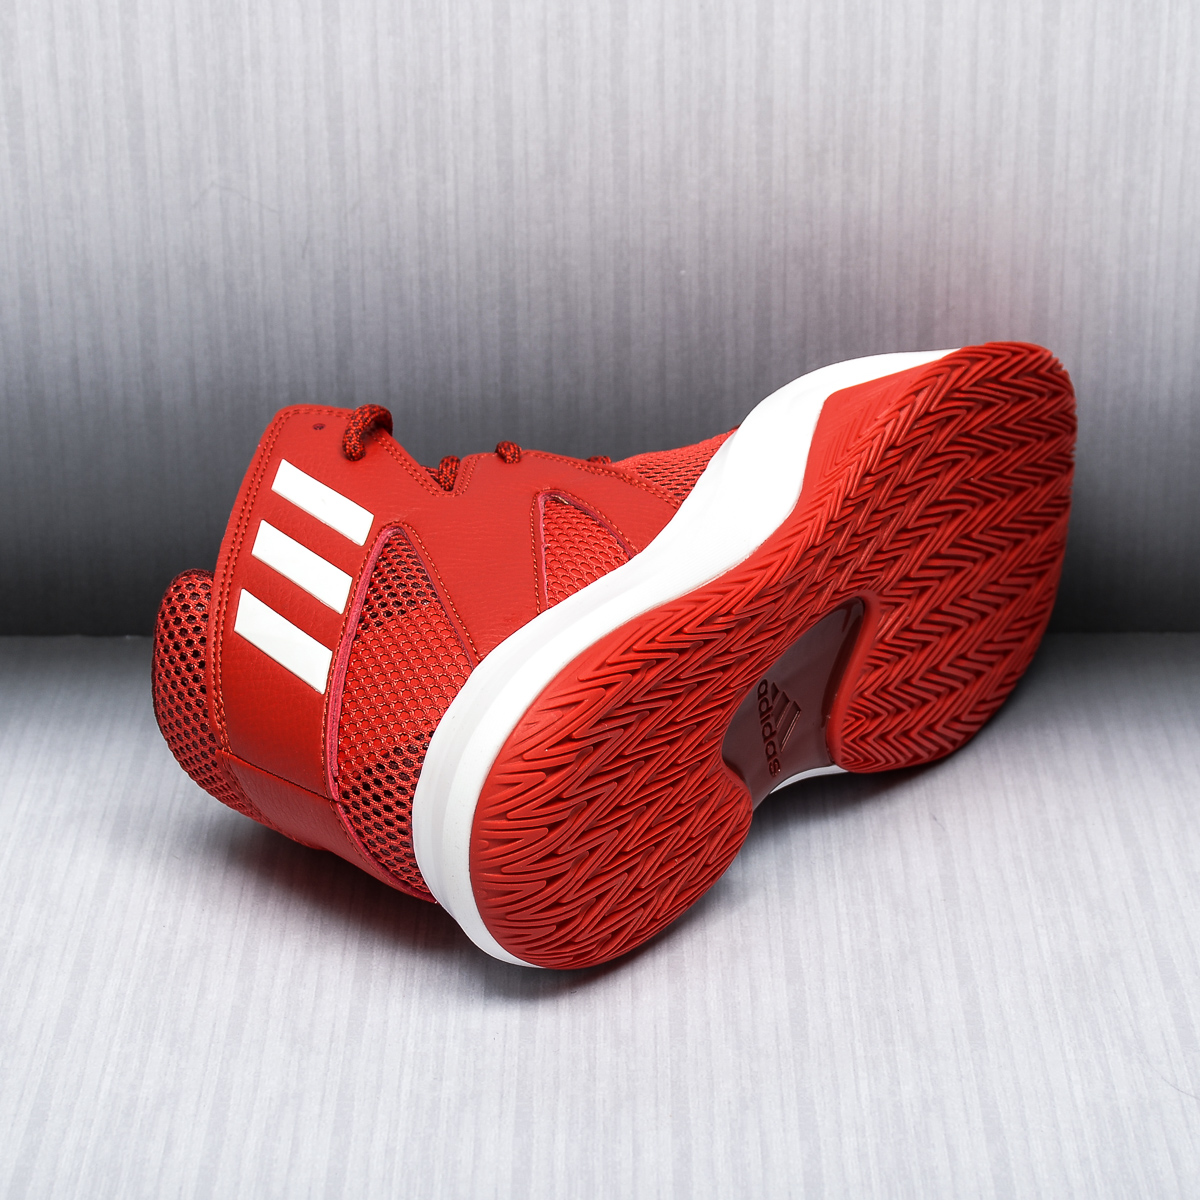 02cd4b250ac adidas Crazy Bounce Basketball Shoes - BASKETBALL SHOES Adidas ...